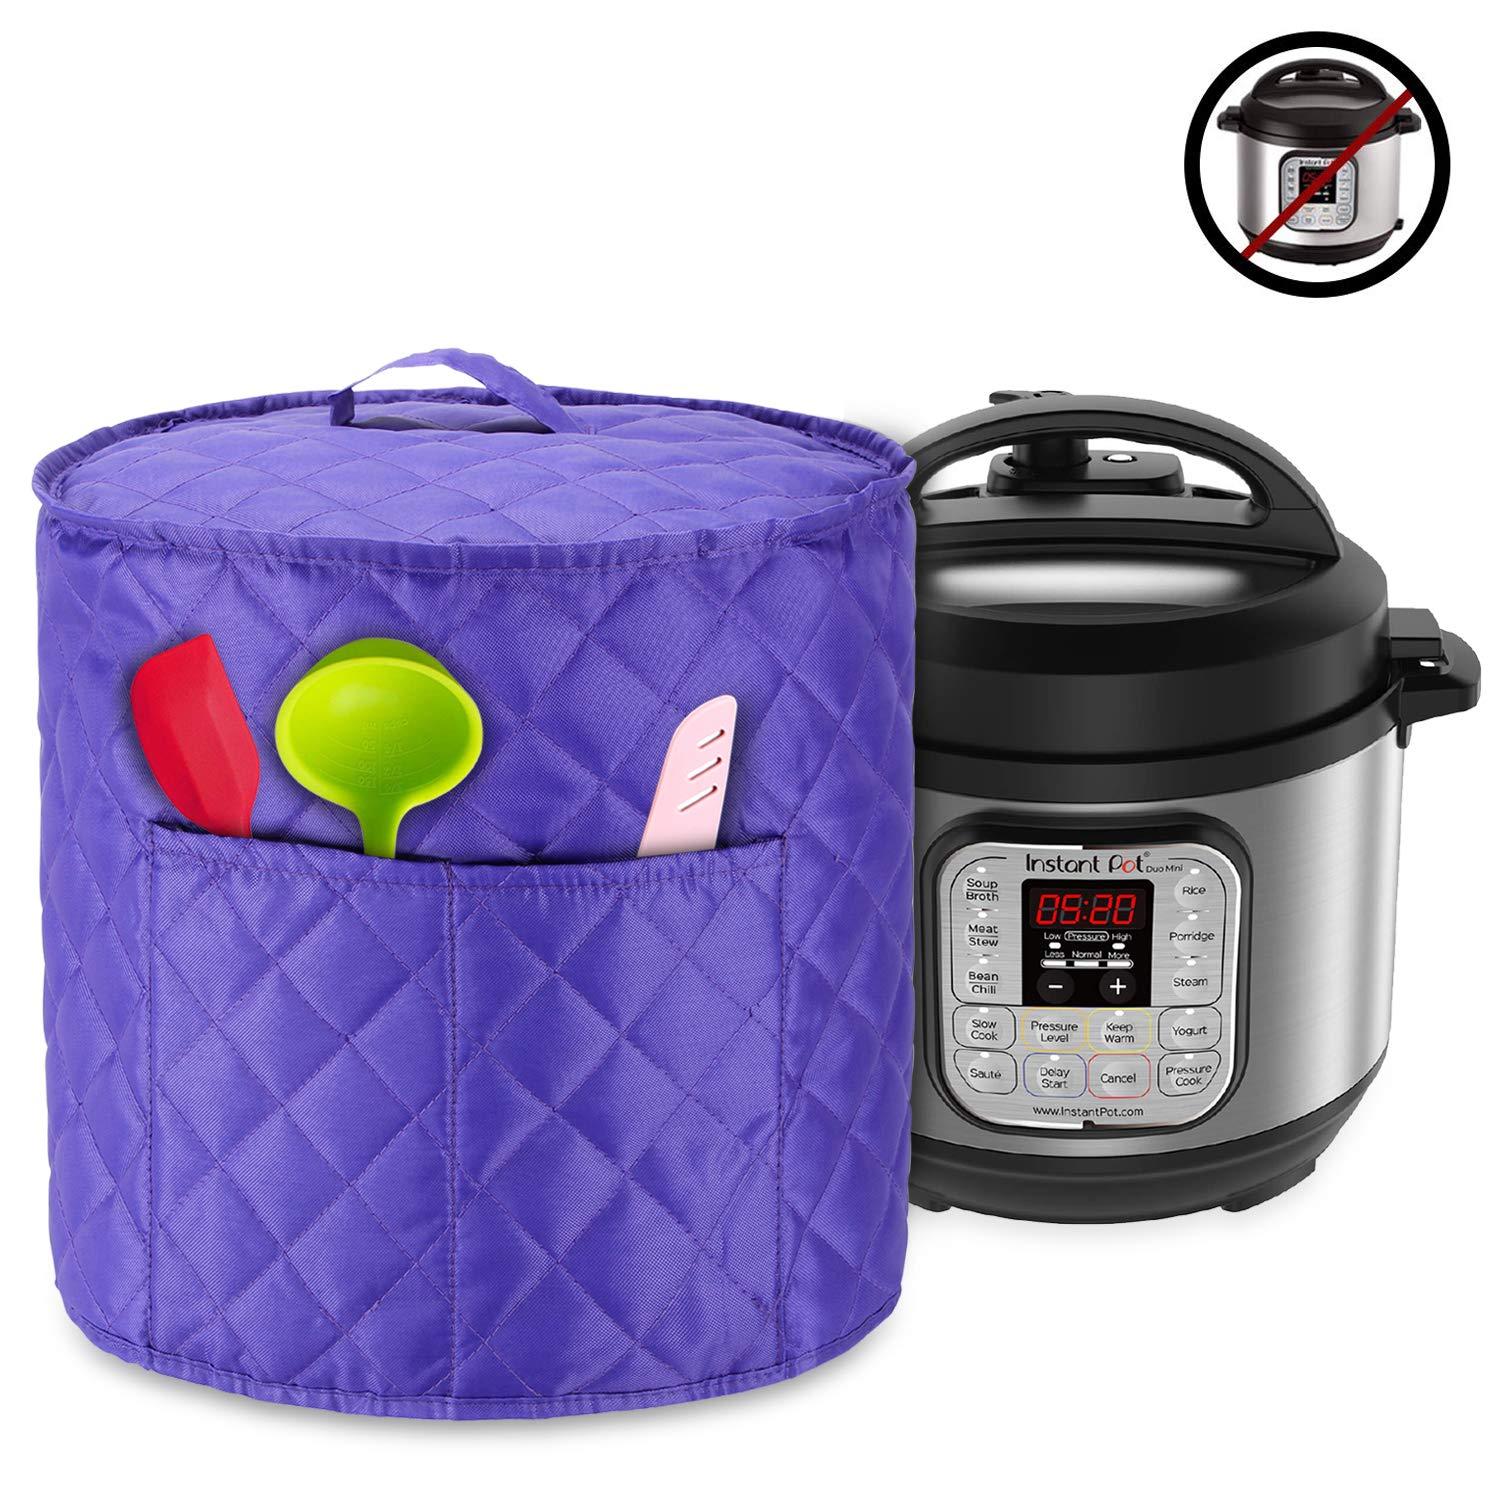 Luxja Dust Cover for 3 Quart Instant Pot, Cloth Cover with Pockets for Instant Pot (3 Quart) and Extra Accessories, Purple Quilted Fabric (Small)